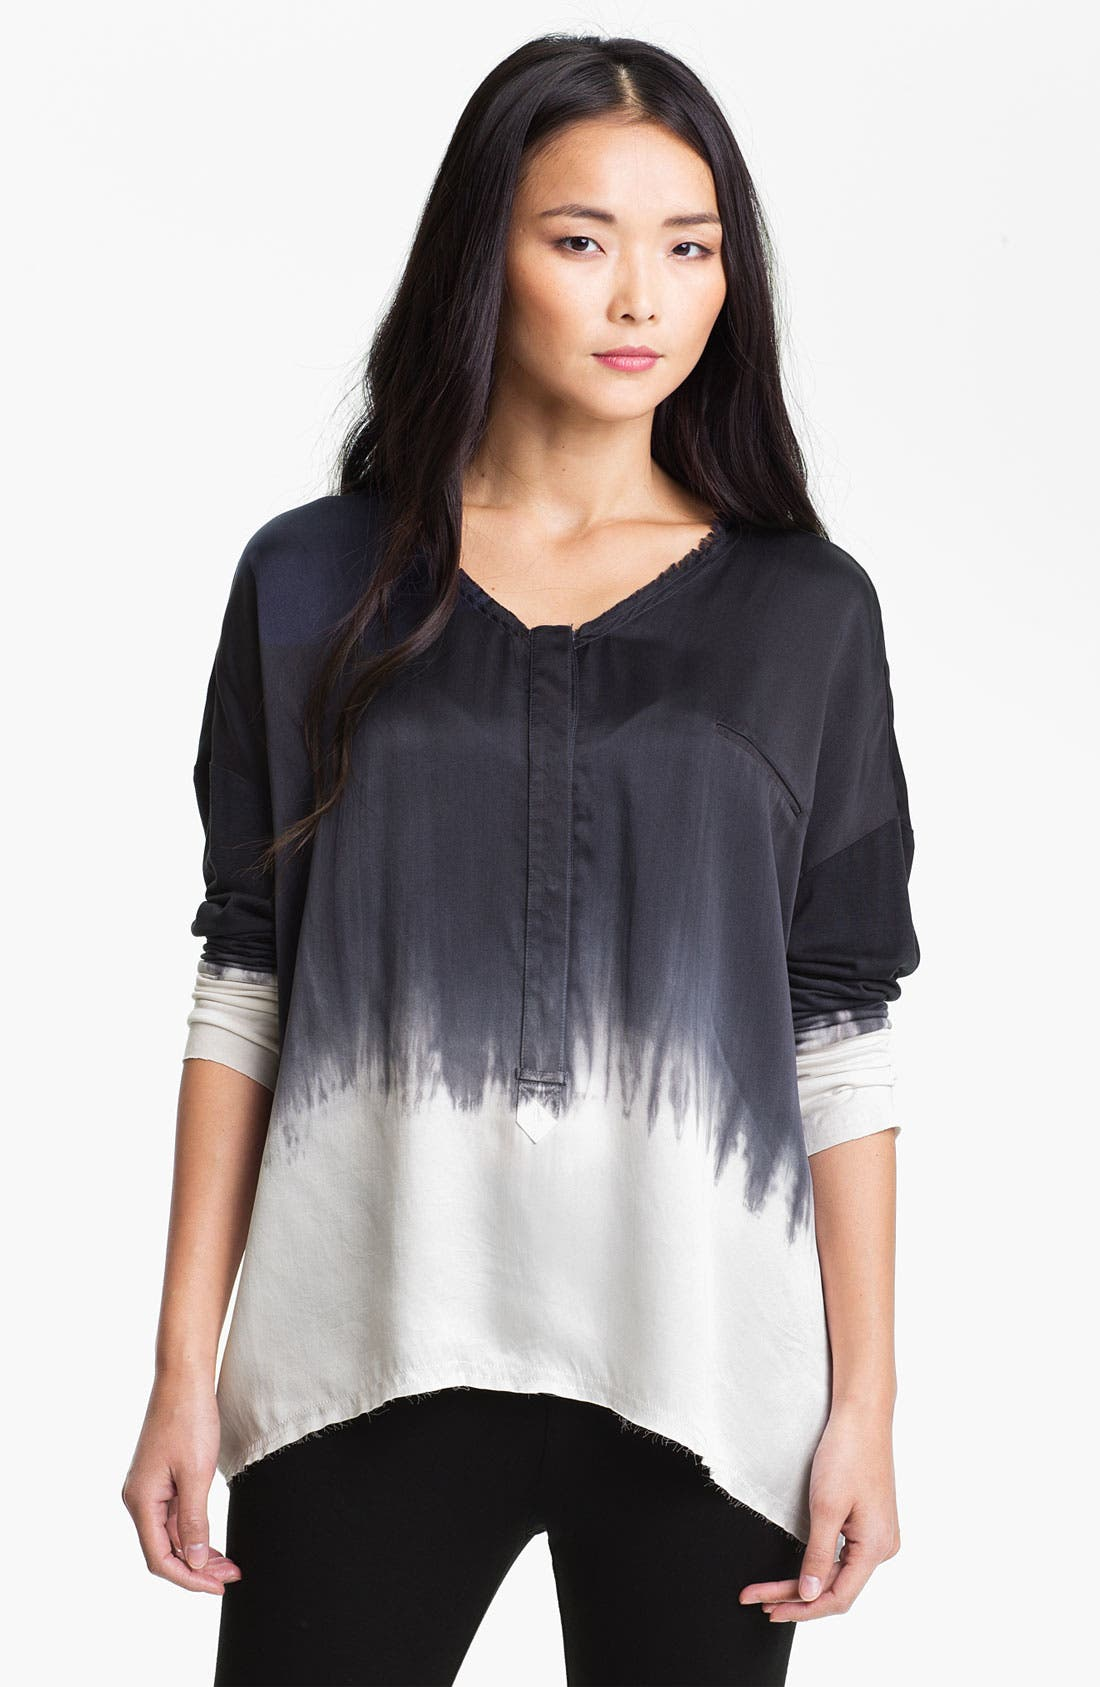 Alternate Image 1 Selected - Go by Go Silk 'Go Luxe' Dip Dye Silk Henley Top (Online Exclusive)